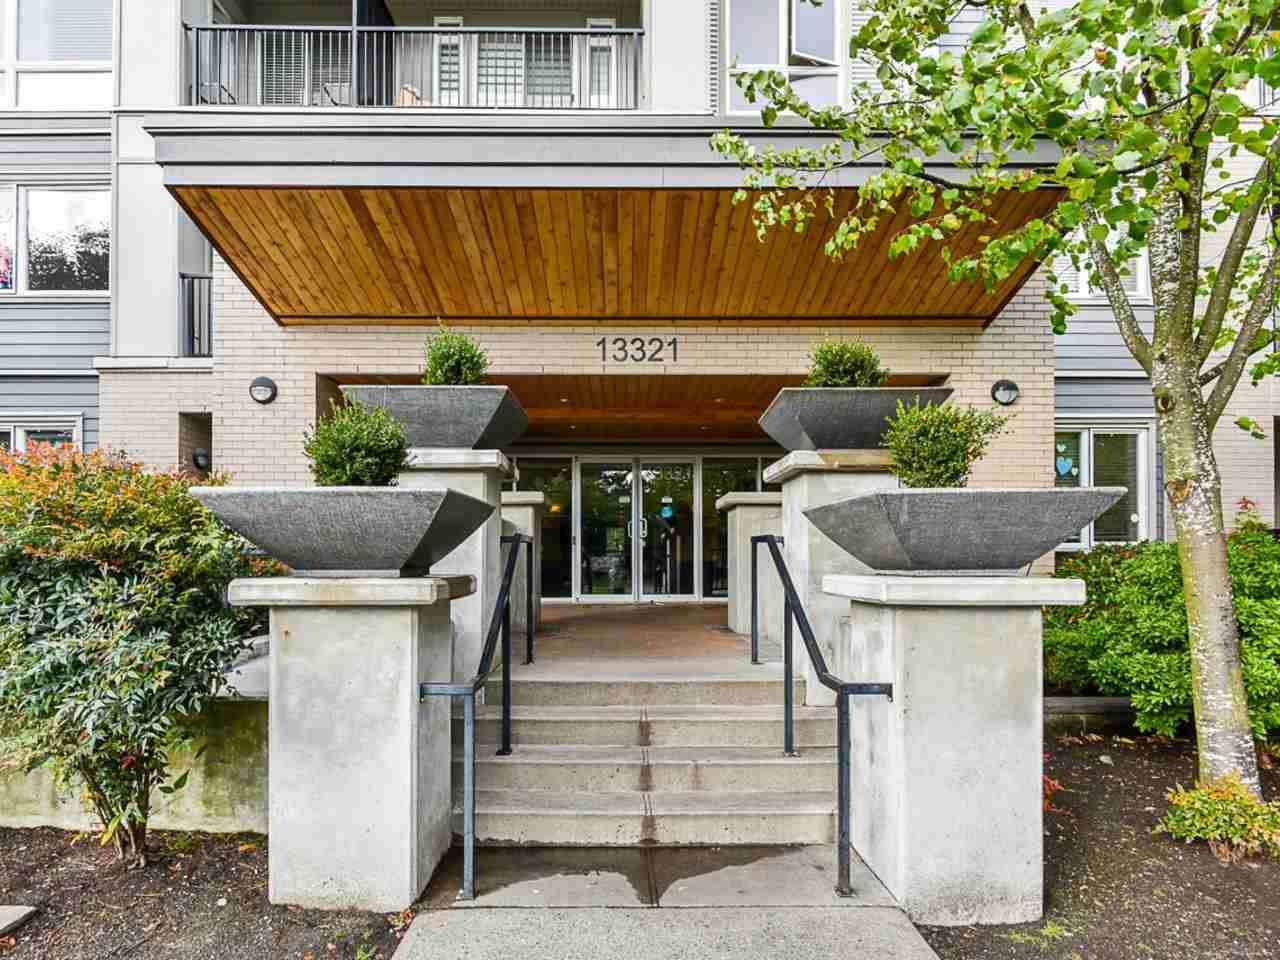 329 13321 102A AVENUE - Whalley Apartment/Condo for sale, 1 Bedroom (R2508611) - #5